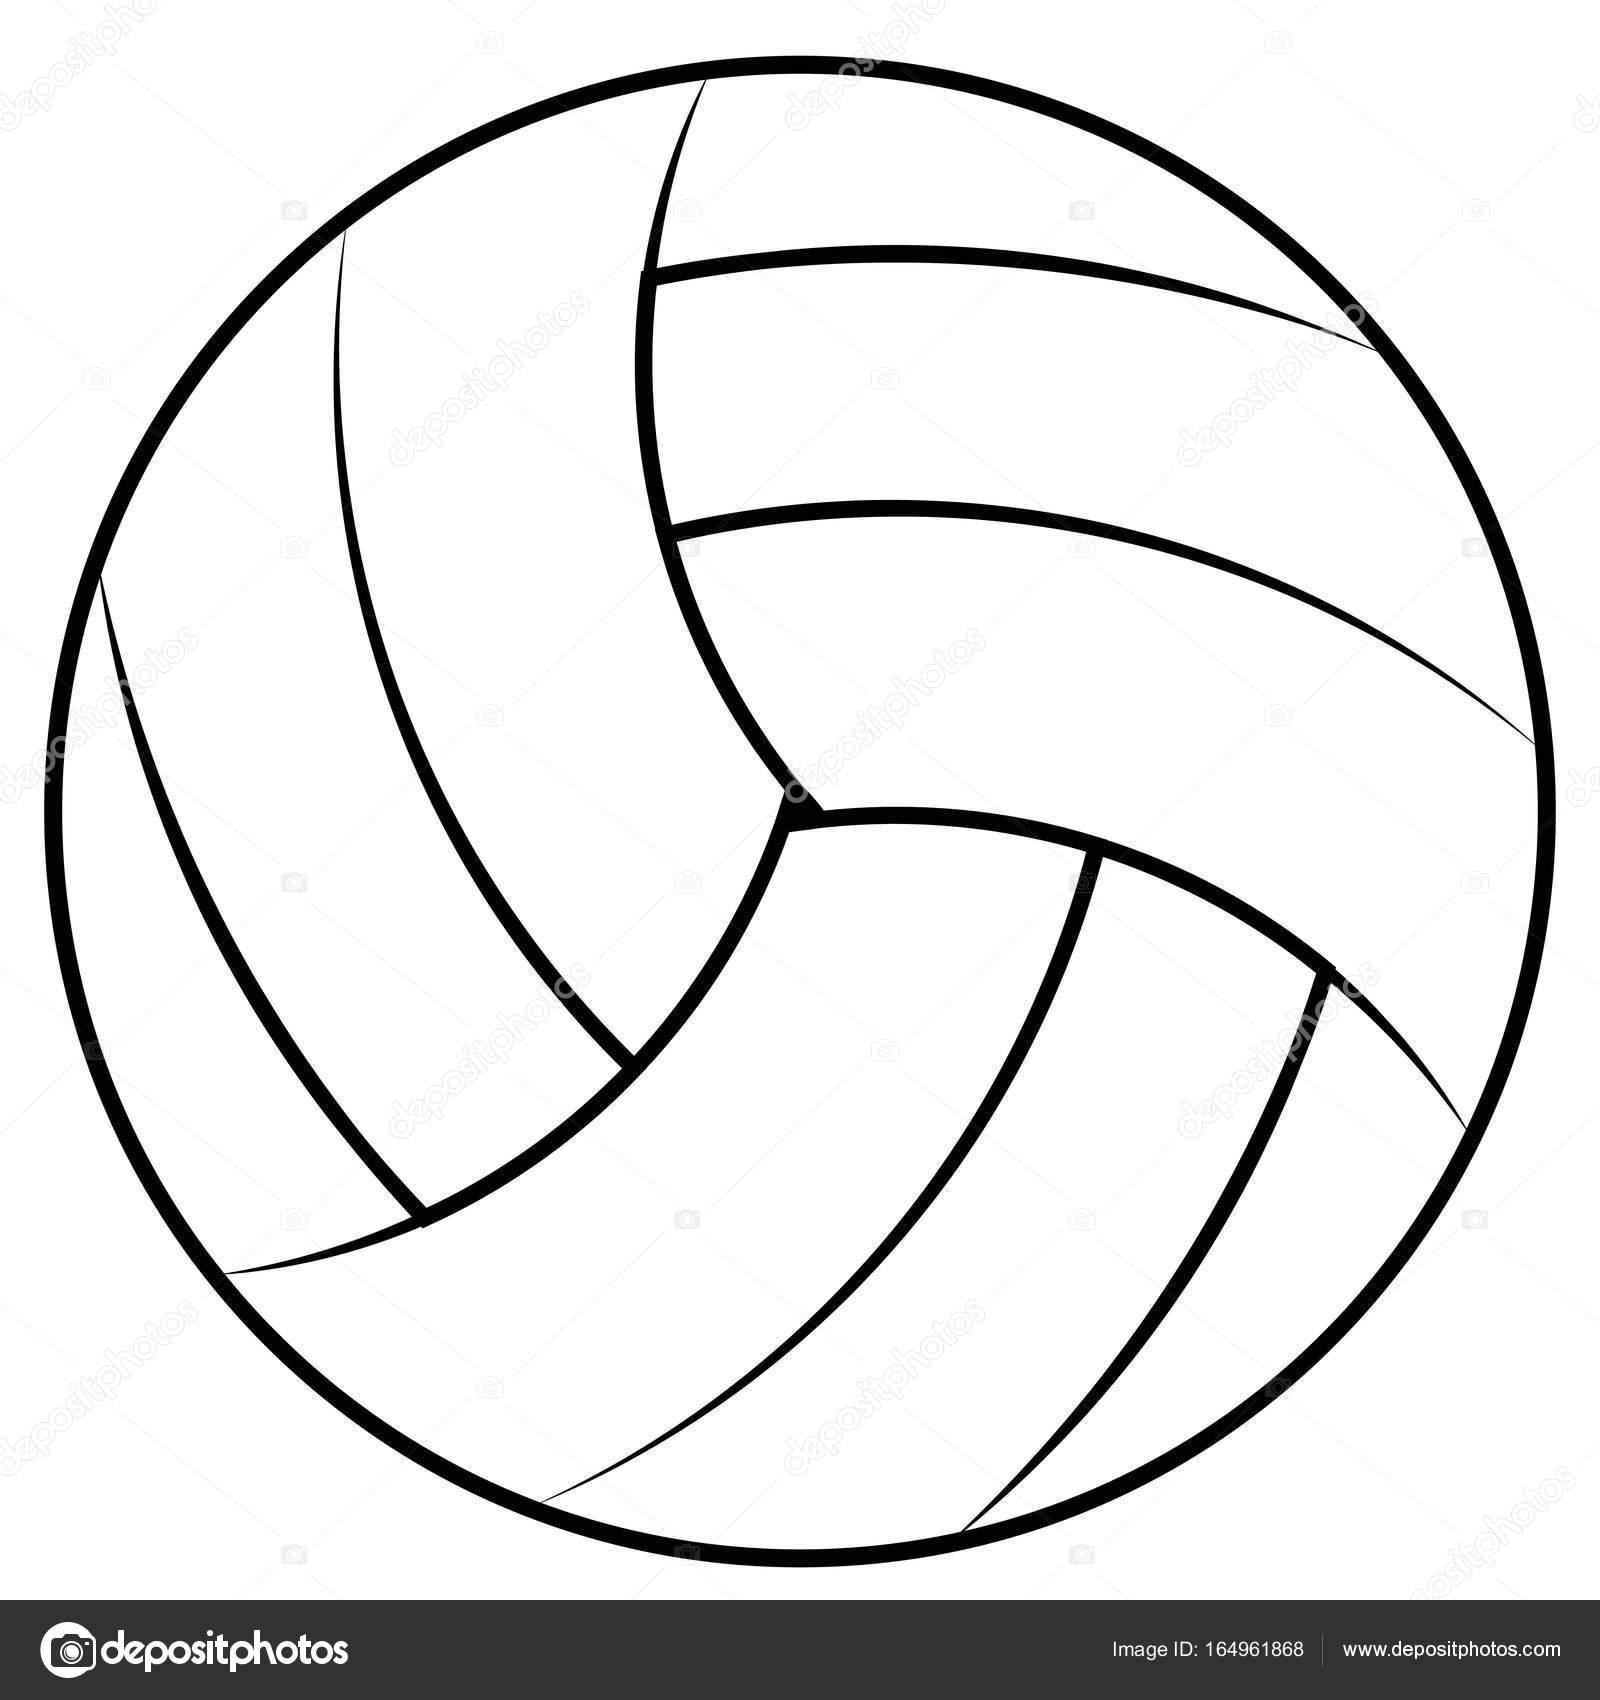 1600x1700 Ball For Playing Beach Volleyball, Vector Volleyball Ball Contours